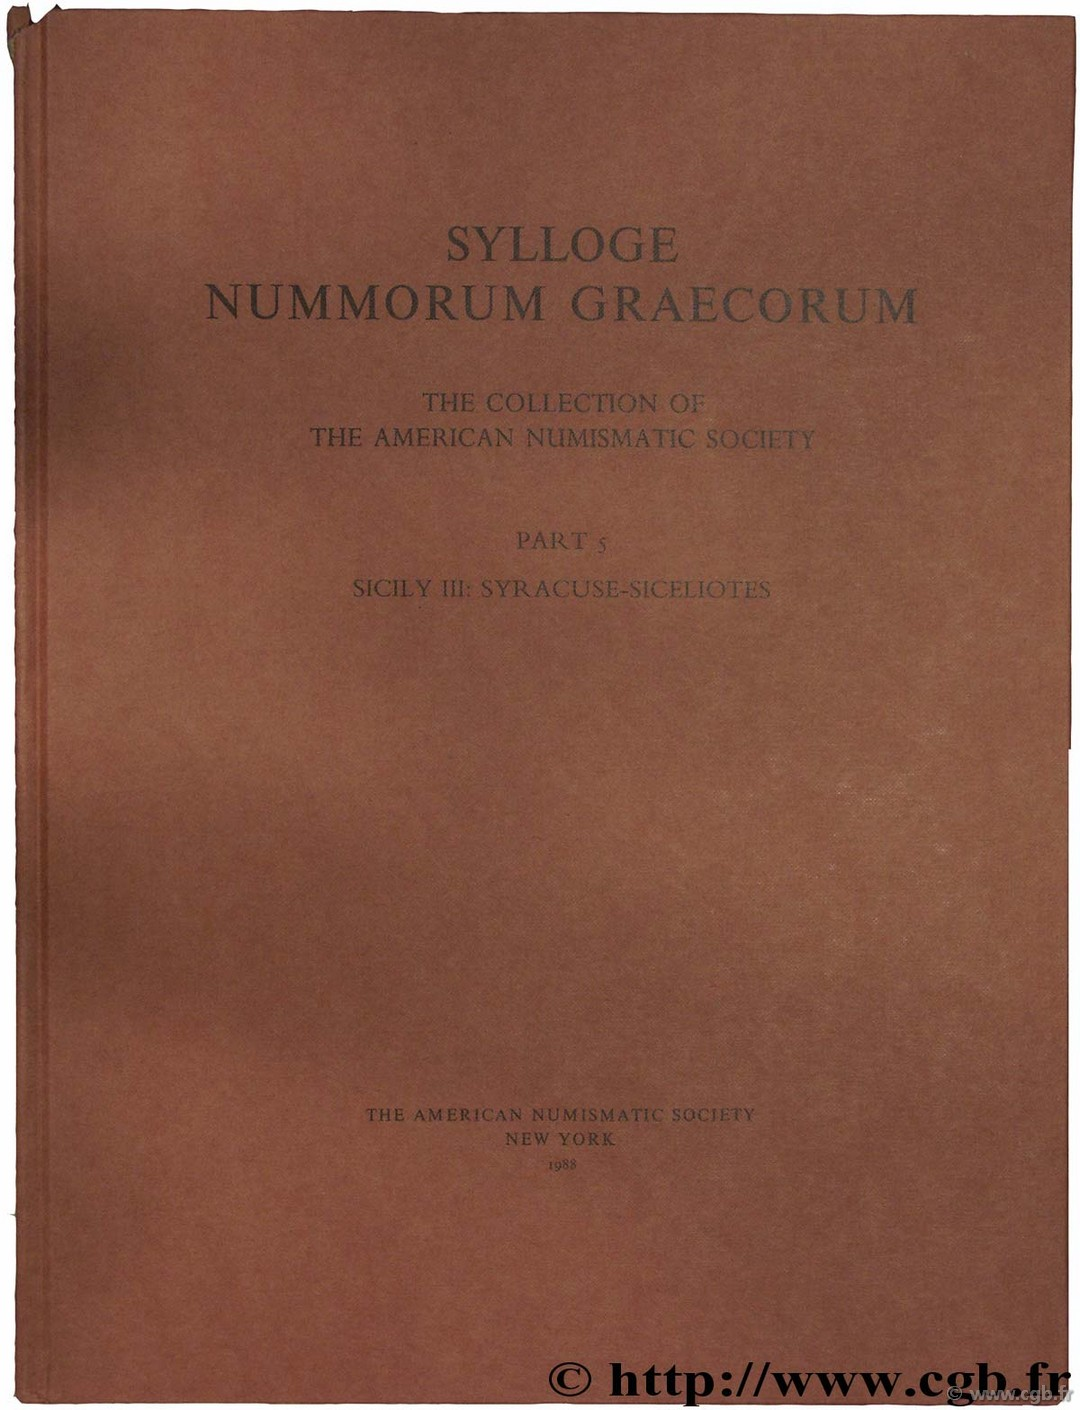 Sylloge Nummorum Graecorum (S.N.G.), The collection of the American Numismatic Society, part 5, Sicily III : Syracuse - Siceliotes